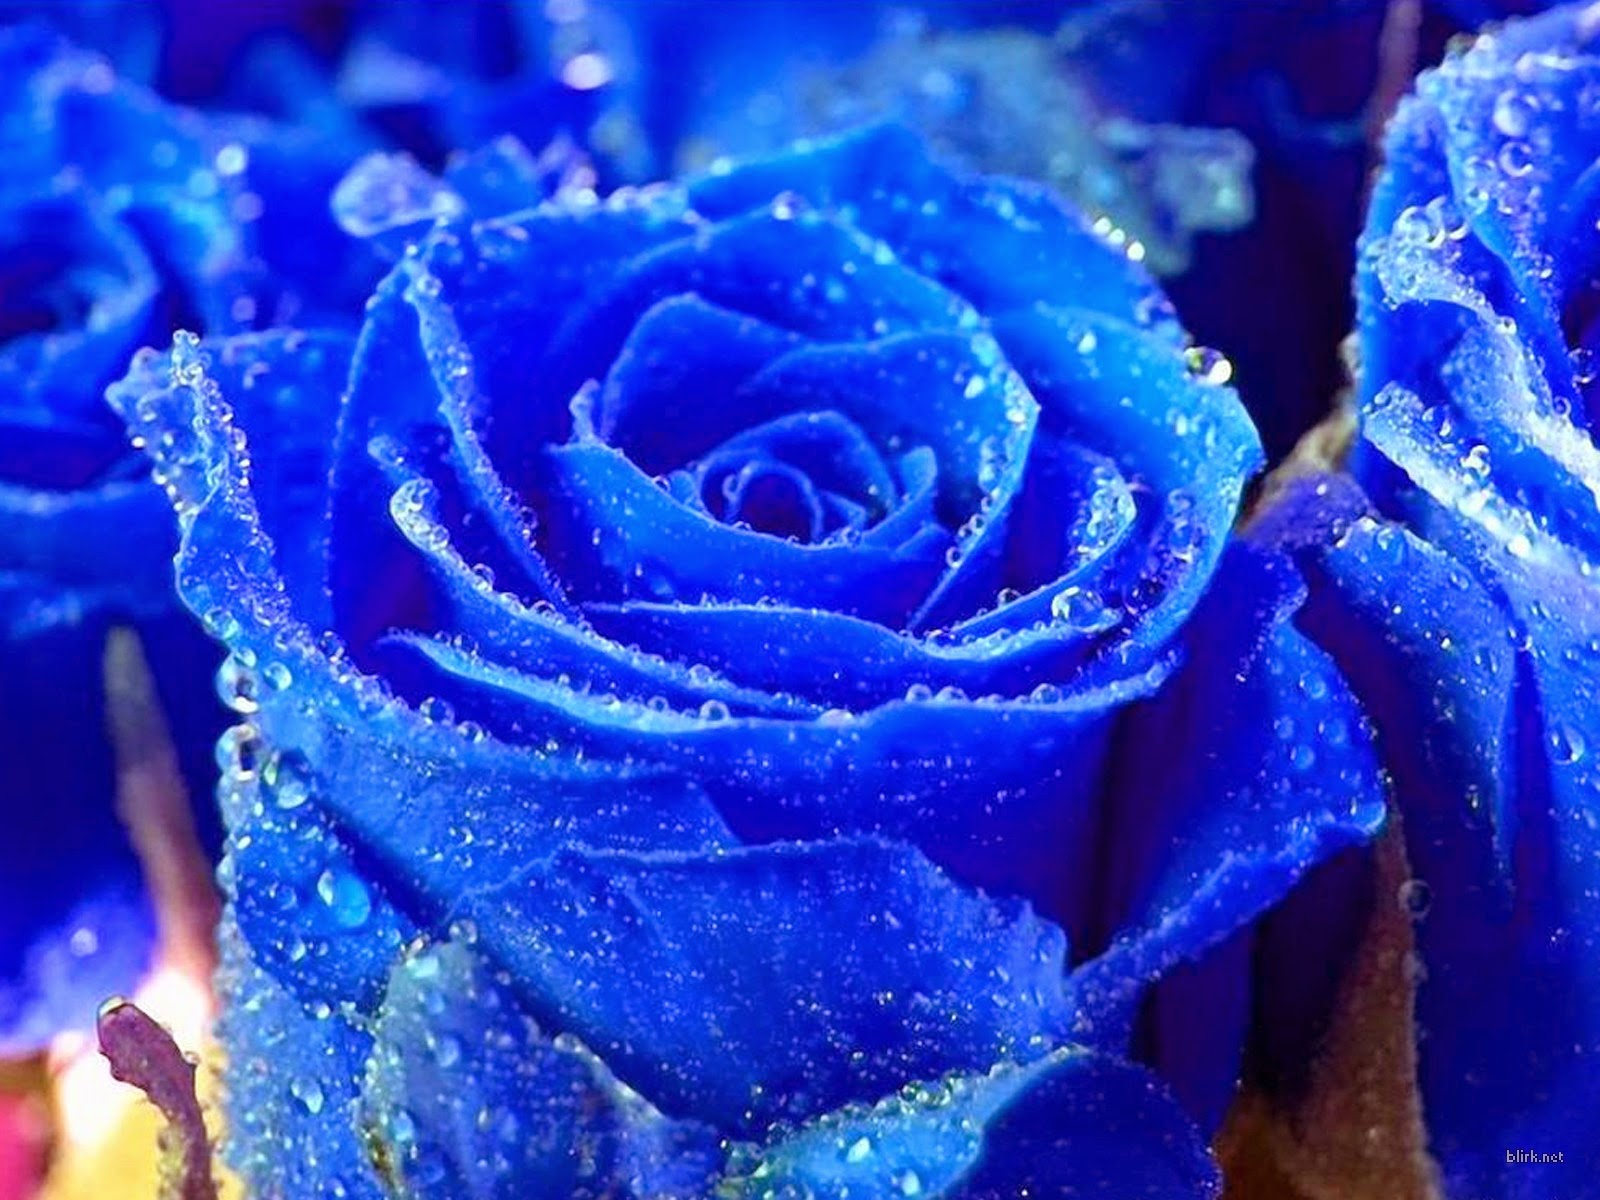 Here You See The Blue Rose Wallpapers These Flower Are Attractice And Decent For Lover Its Show Deep Friendship Both Lovers